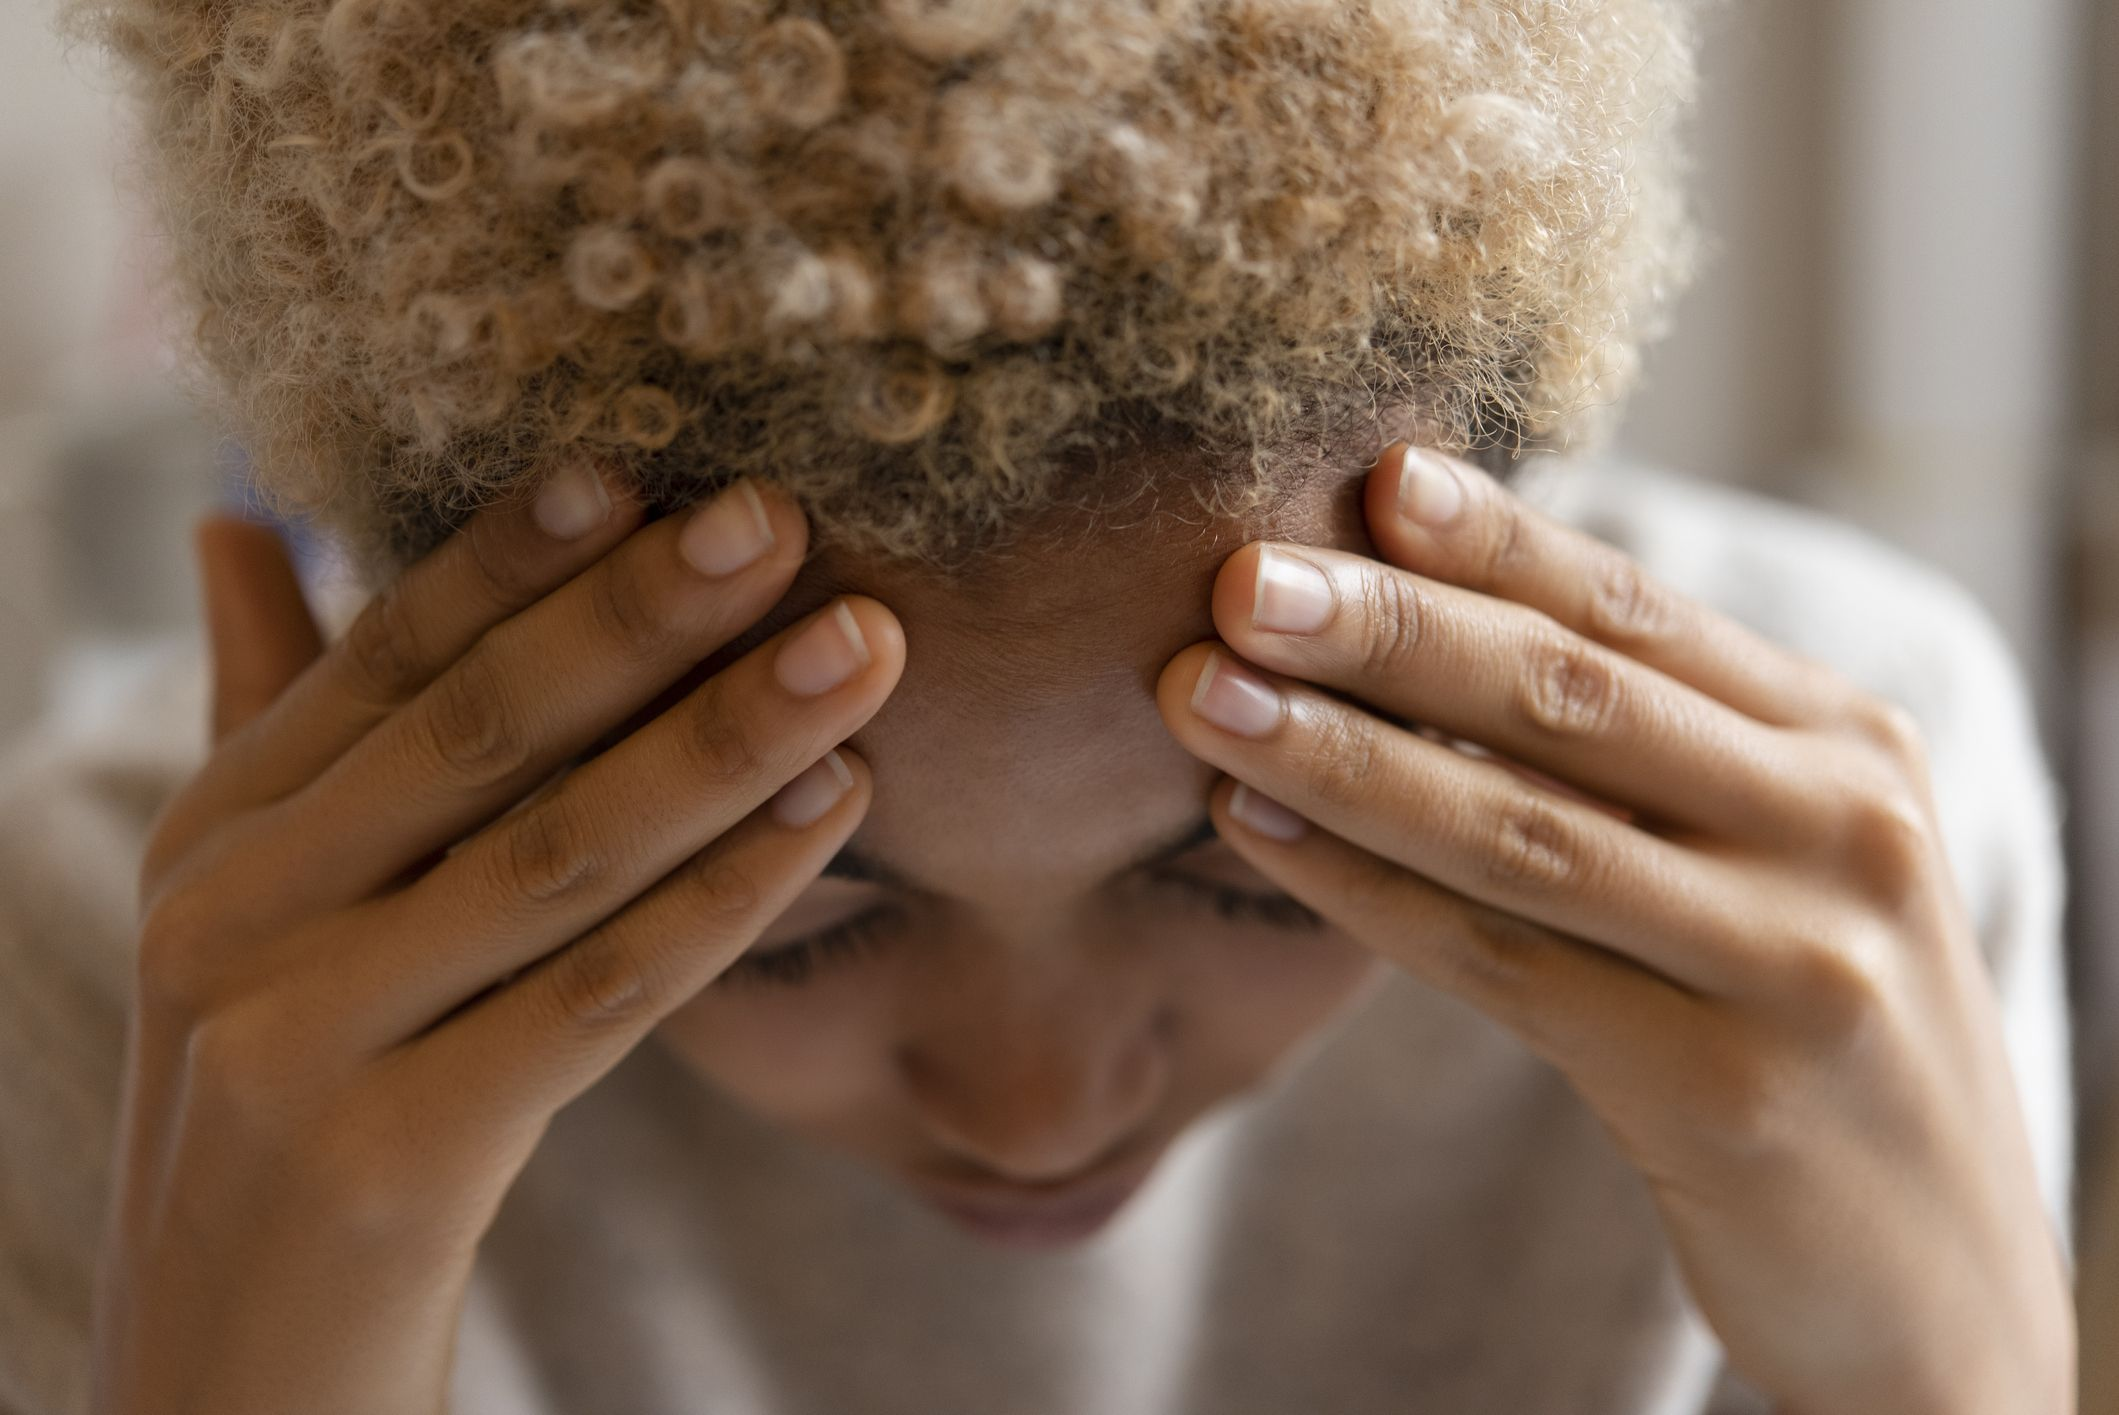 Leading researcher says that a headache and runny nose are linked to the Delta variant